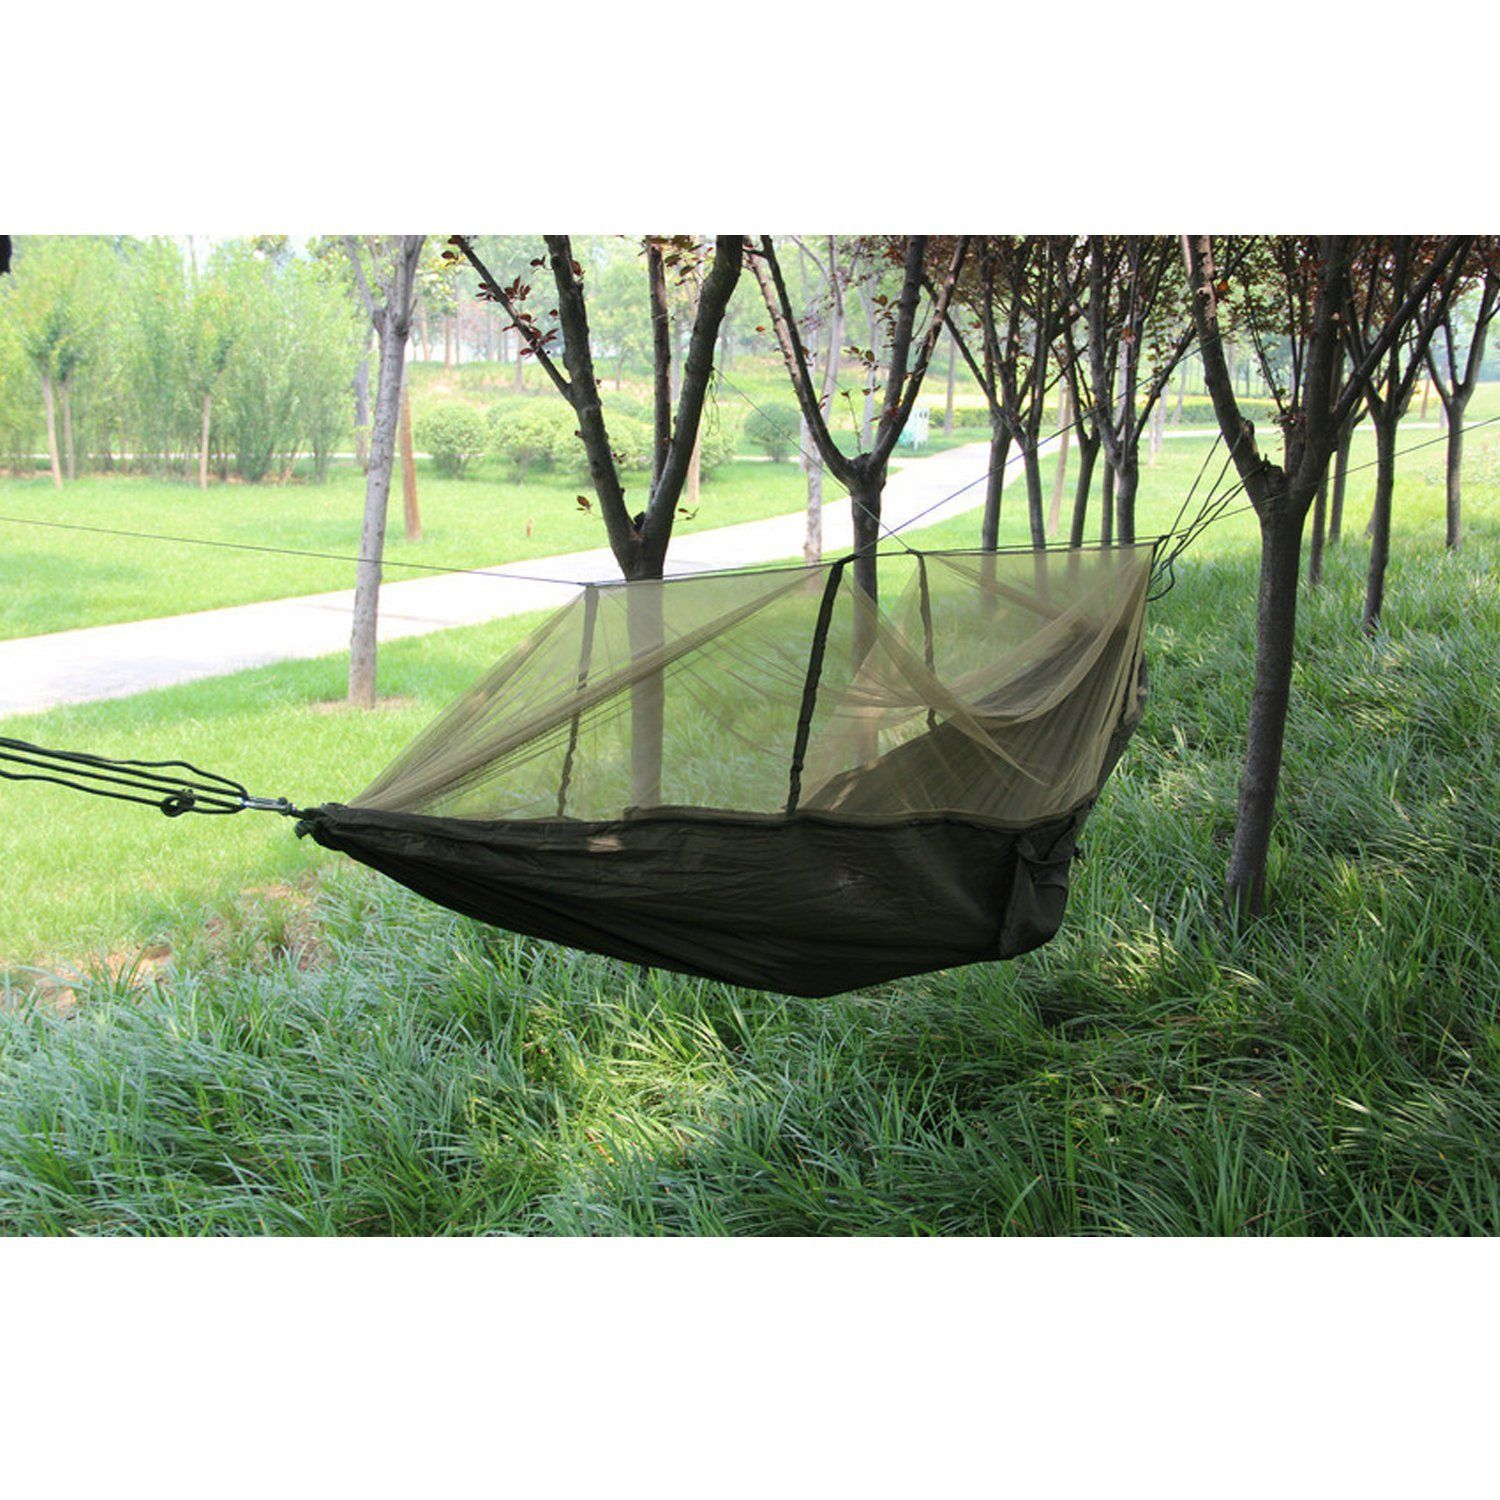 protection and plant bugs best hammocksneedtrees mosquitos net outdoor freedom no camping mosquito hammocks for top madera products trees that eno bug against hammock see companies